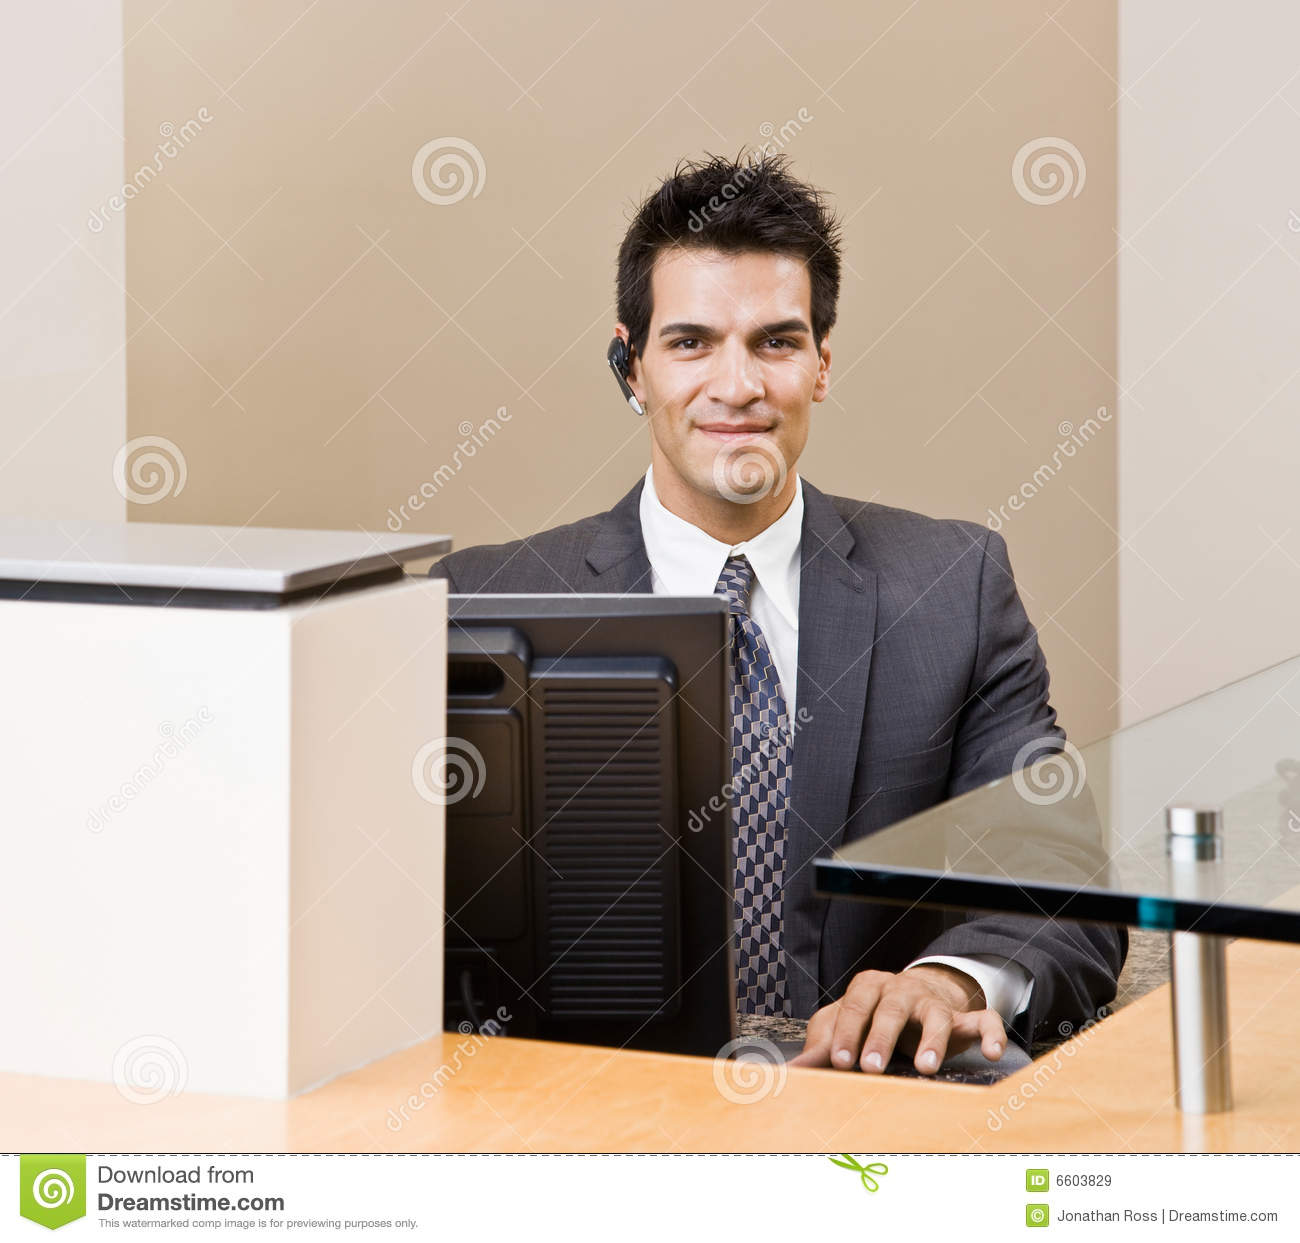 Male Receptionist With Telephone Earpiece Stock Image